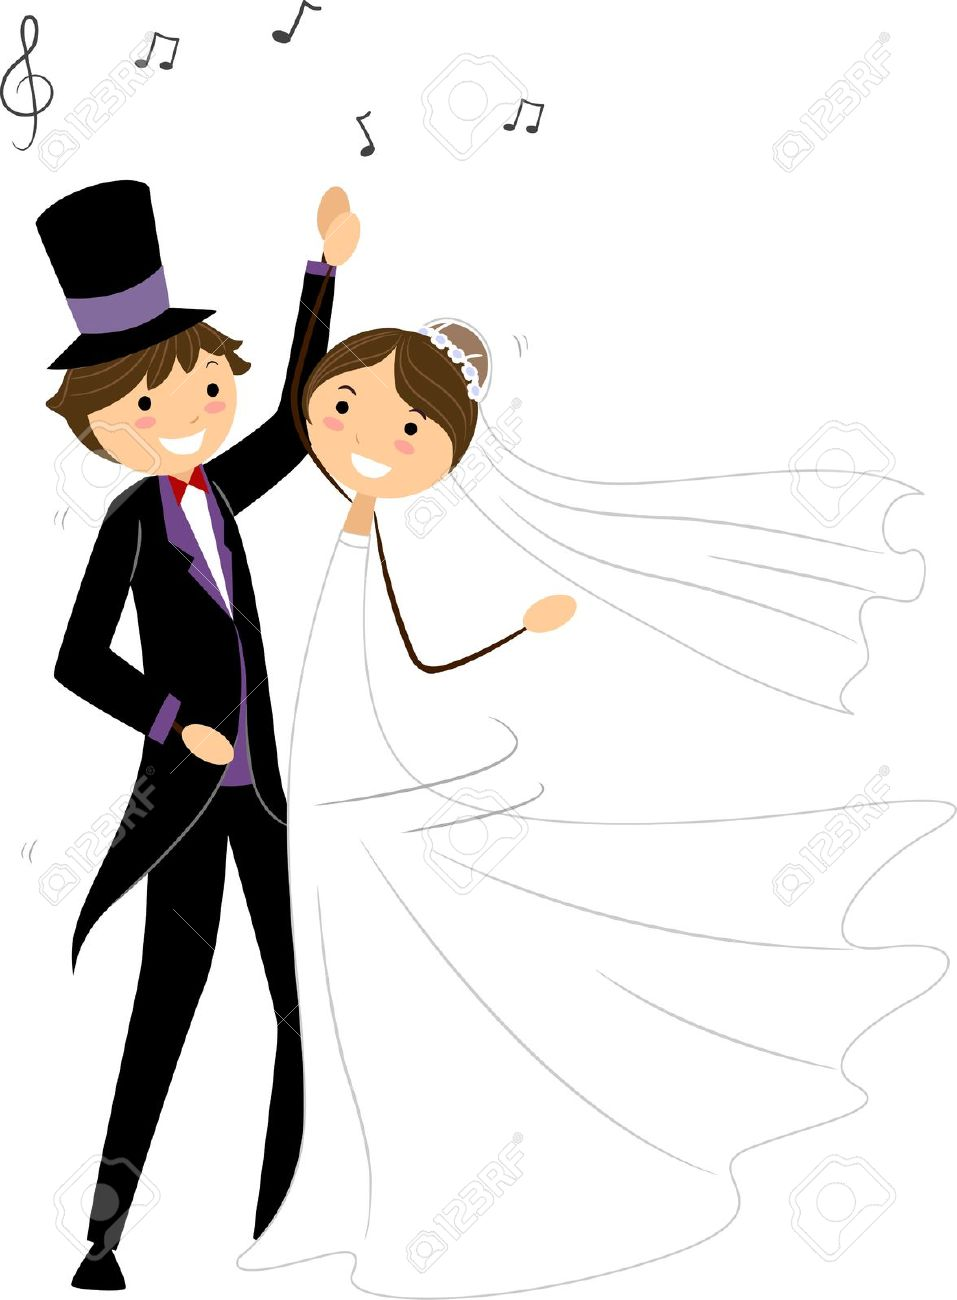 Illustration Of Newlyweds Performing A Wedding Dance Stock Photo.